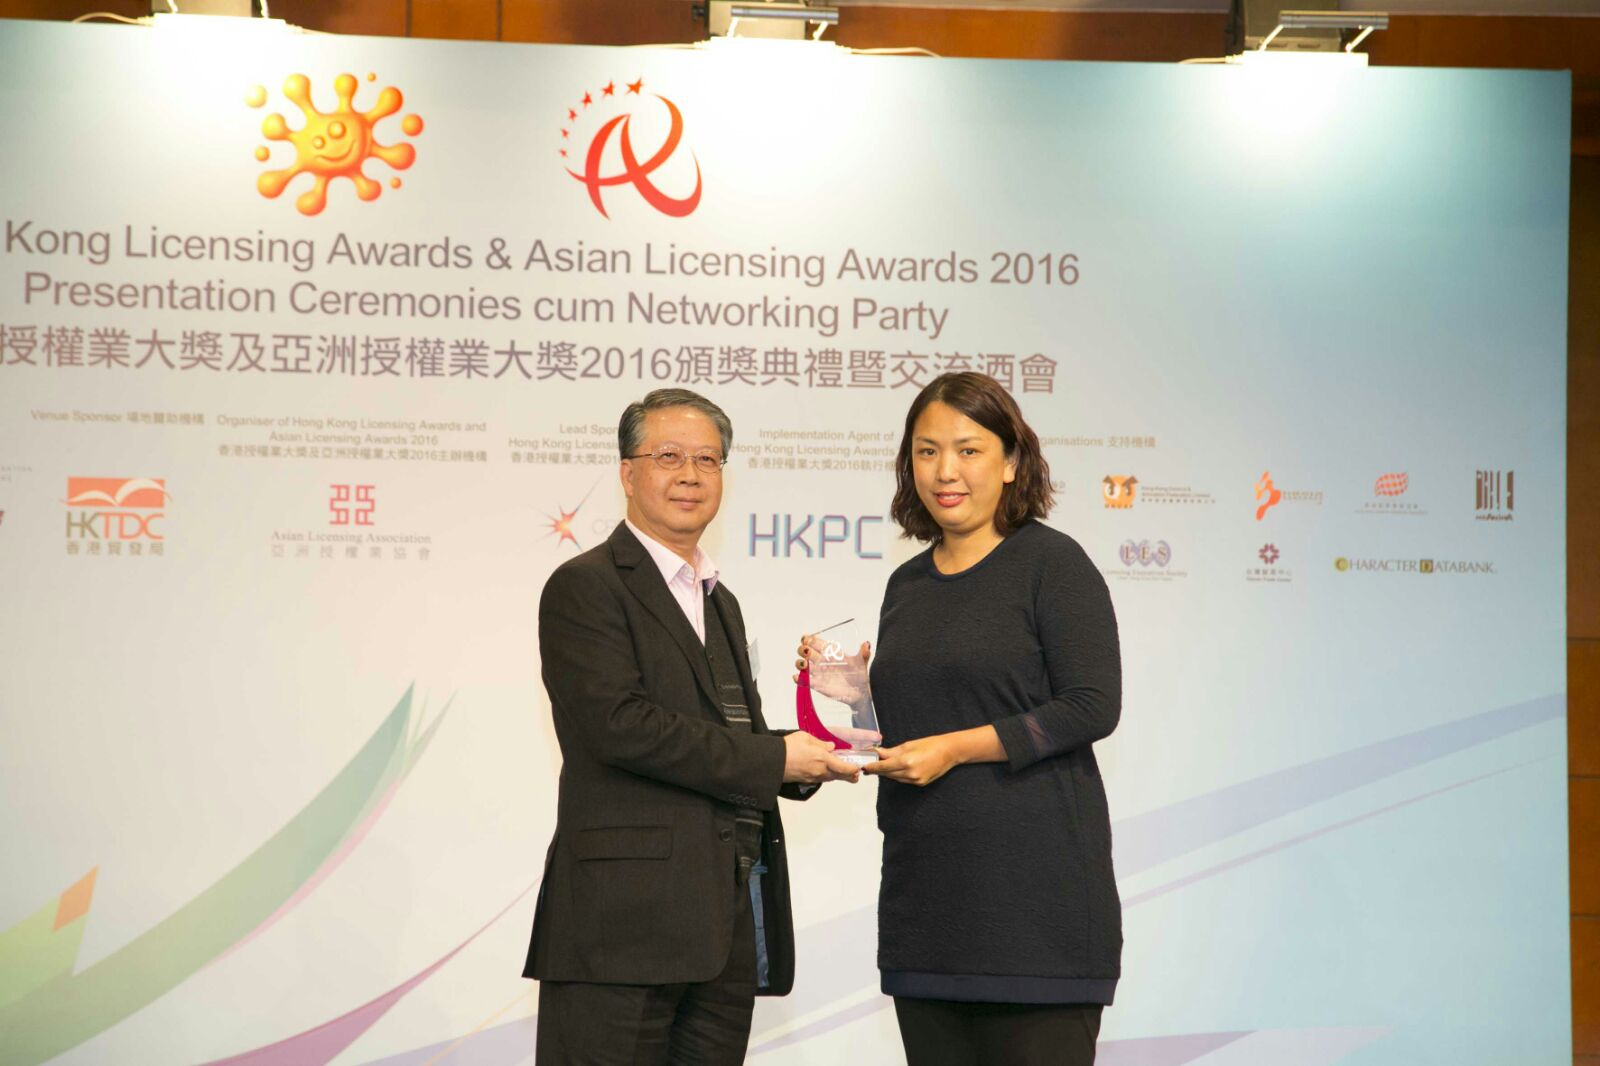 Young Property -  Mr. Robert Lee, Chairman of Hong Kong Creative Industries Association